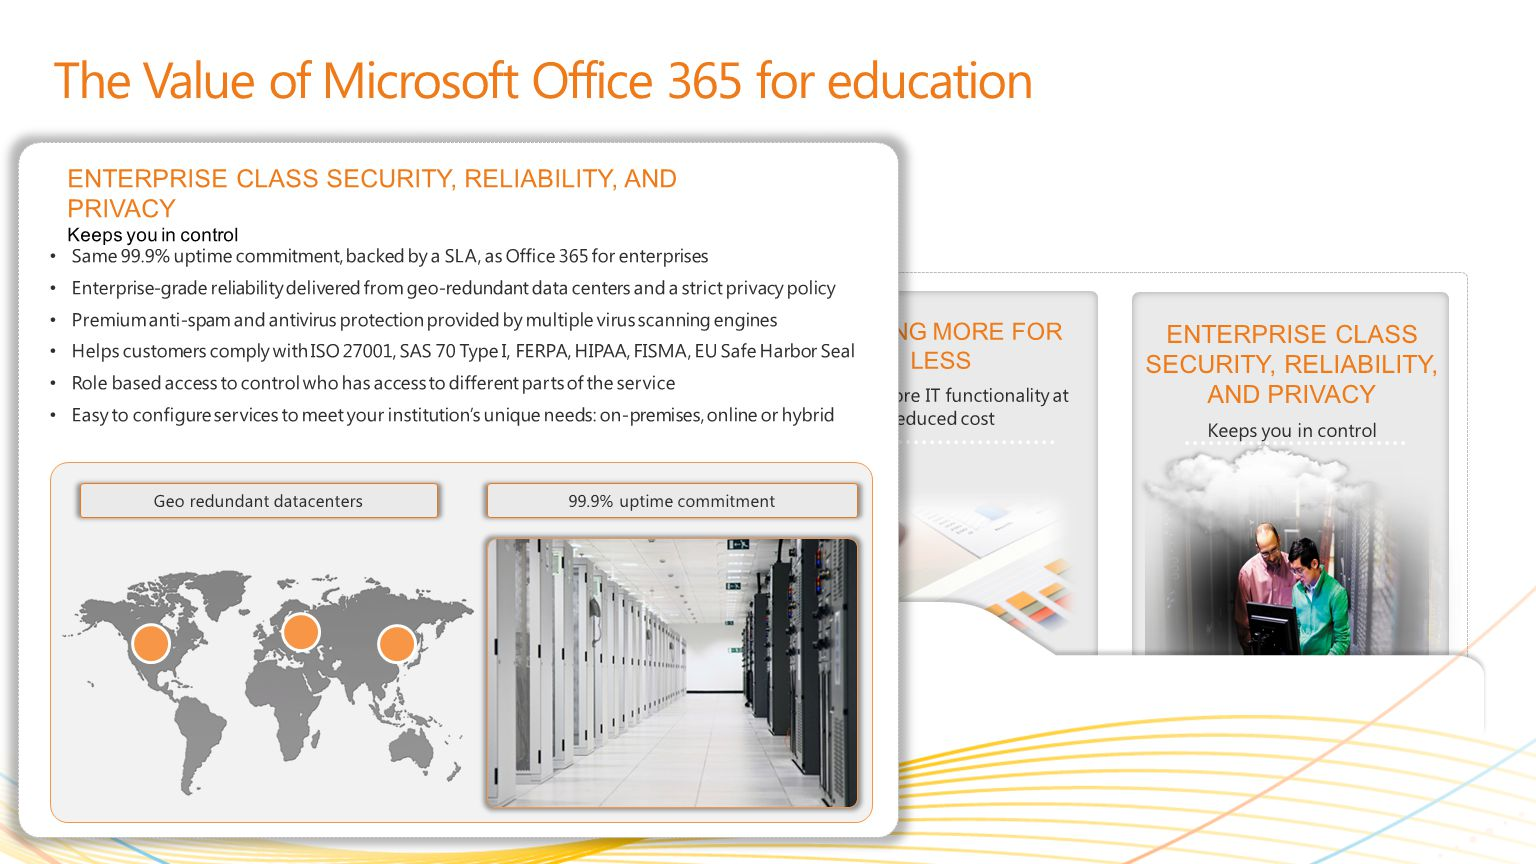 | Copyright© 2010 Microsoft Corporation GETTING MORE FOR LESS Deliver more IT functionality at reduced cost MEETING STUDENT AND EDUCATOR NEEDS Learning together, smarter LEARNING FROM ANYWHERE * Solve problems from more places ENTERPRISE CLASS SECURITY, RELIABILITY, AND PRIVACY Keeps you in control The Value of Microsoft Office 365 for education Same 99.9% uptime commitment, backed by a SLA, as Office 365 for enterprises Enterprise-grade reliability delivered from geo-redundant data centers and a strict privacy policy Premium anti-spam and antivirus protection provided by multiple virus scanning engines Helps customers comply with ISO 27001, SAS 70 Type I, FERPA, HIPAA, FISMA, EU Safe Harbor Seal Role based access to control who has access to different parts of the service Easy to configure services to meet your institutions unique needs: on-premises, online or hybrid ENTERPRISE CLASS SECURITY, RELIABILITY, AND PRIVACY Keeps you in control 99.9% uptime commitmentGeo redundant datacenters